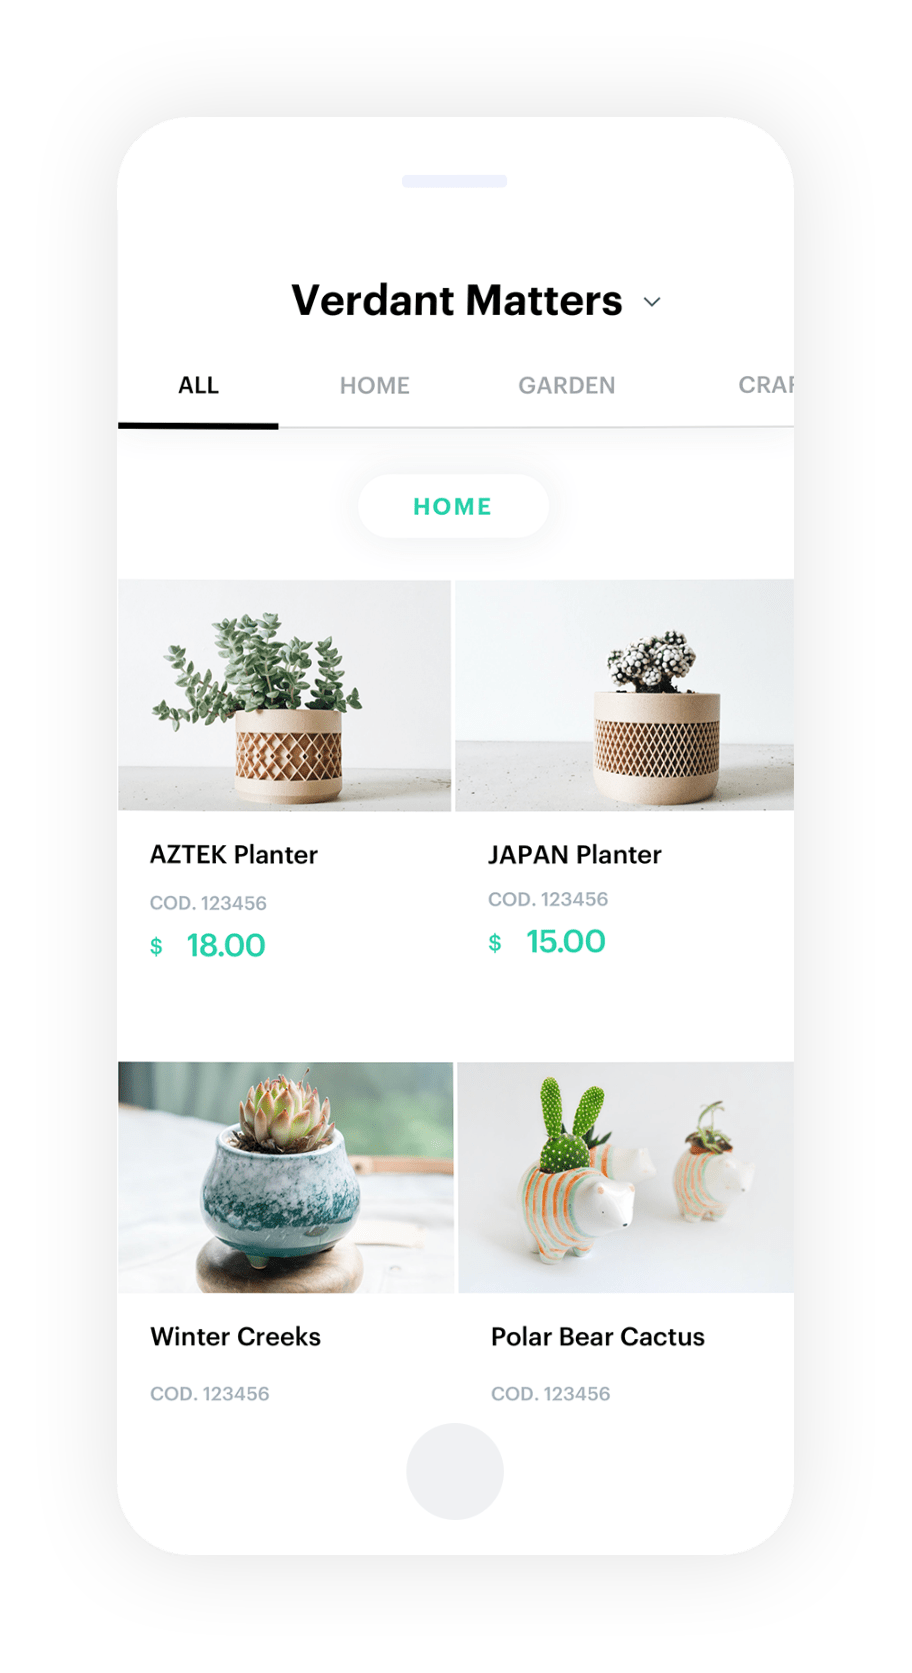 The app to create an Online Catalog